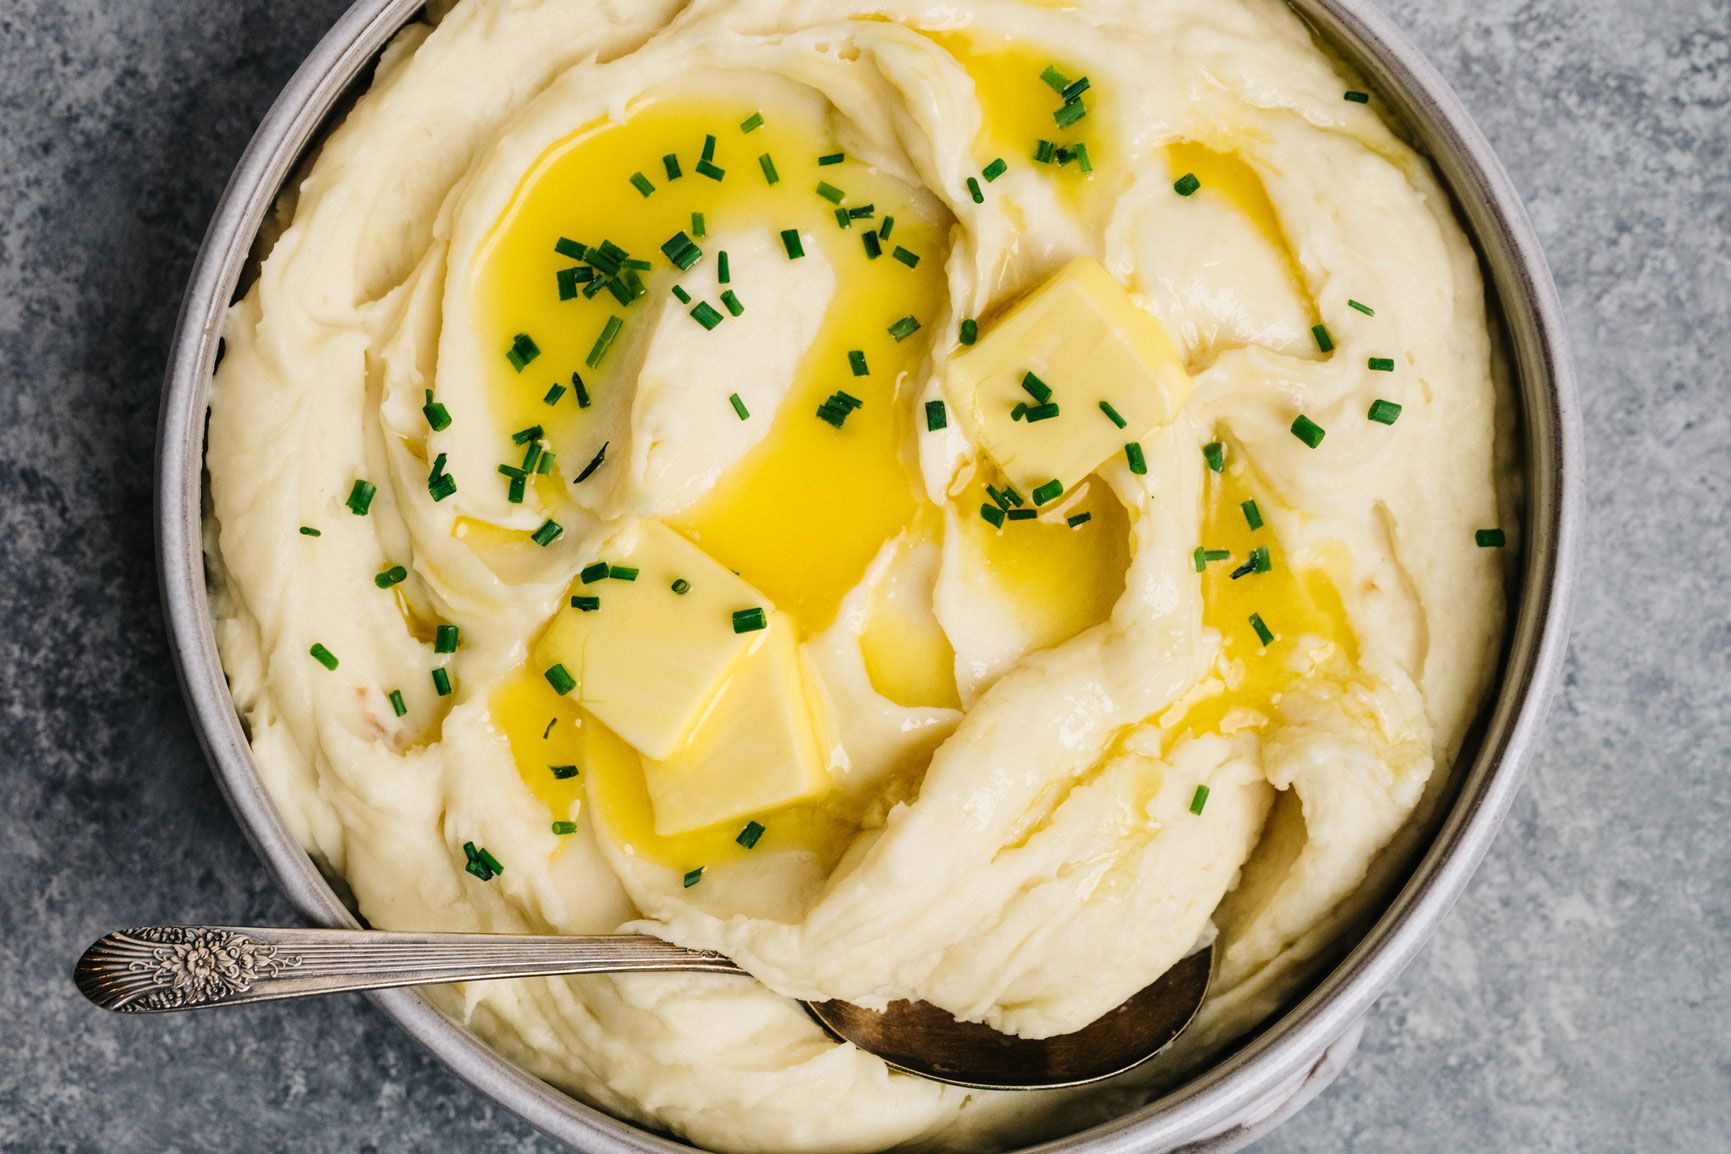 This Is the Best Way to Reheat Mashed Potatoes and Keep Them Creamy